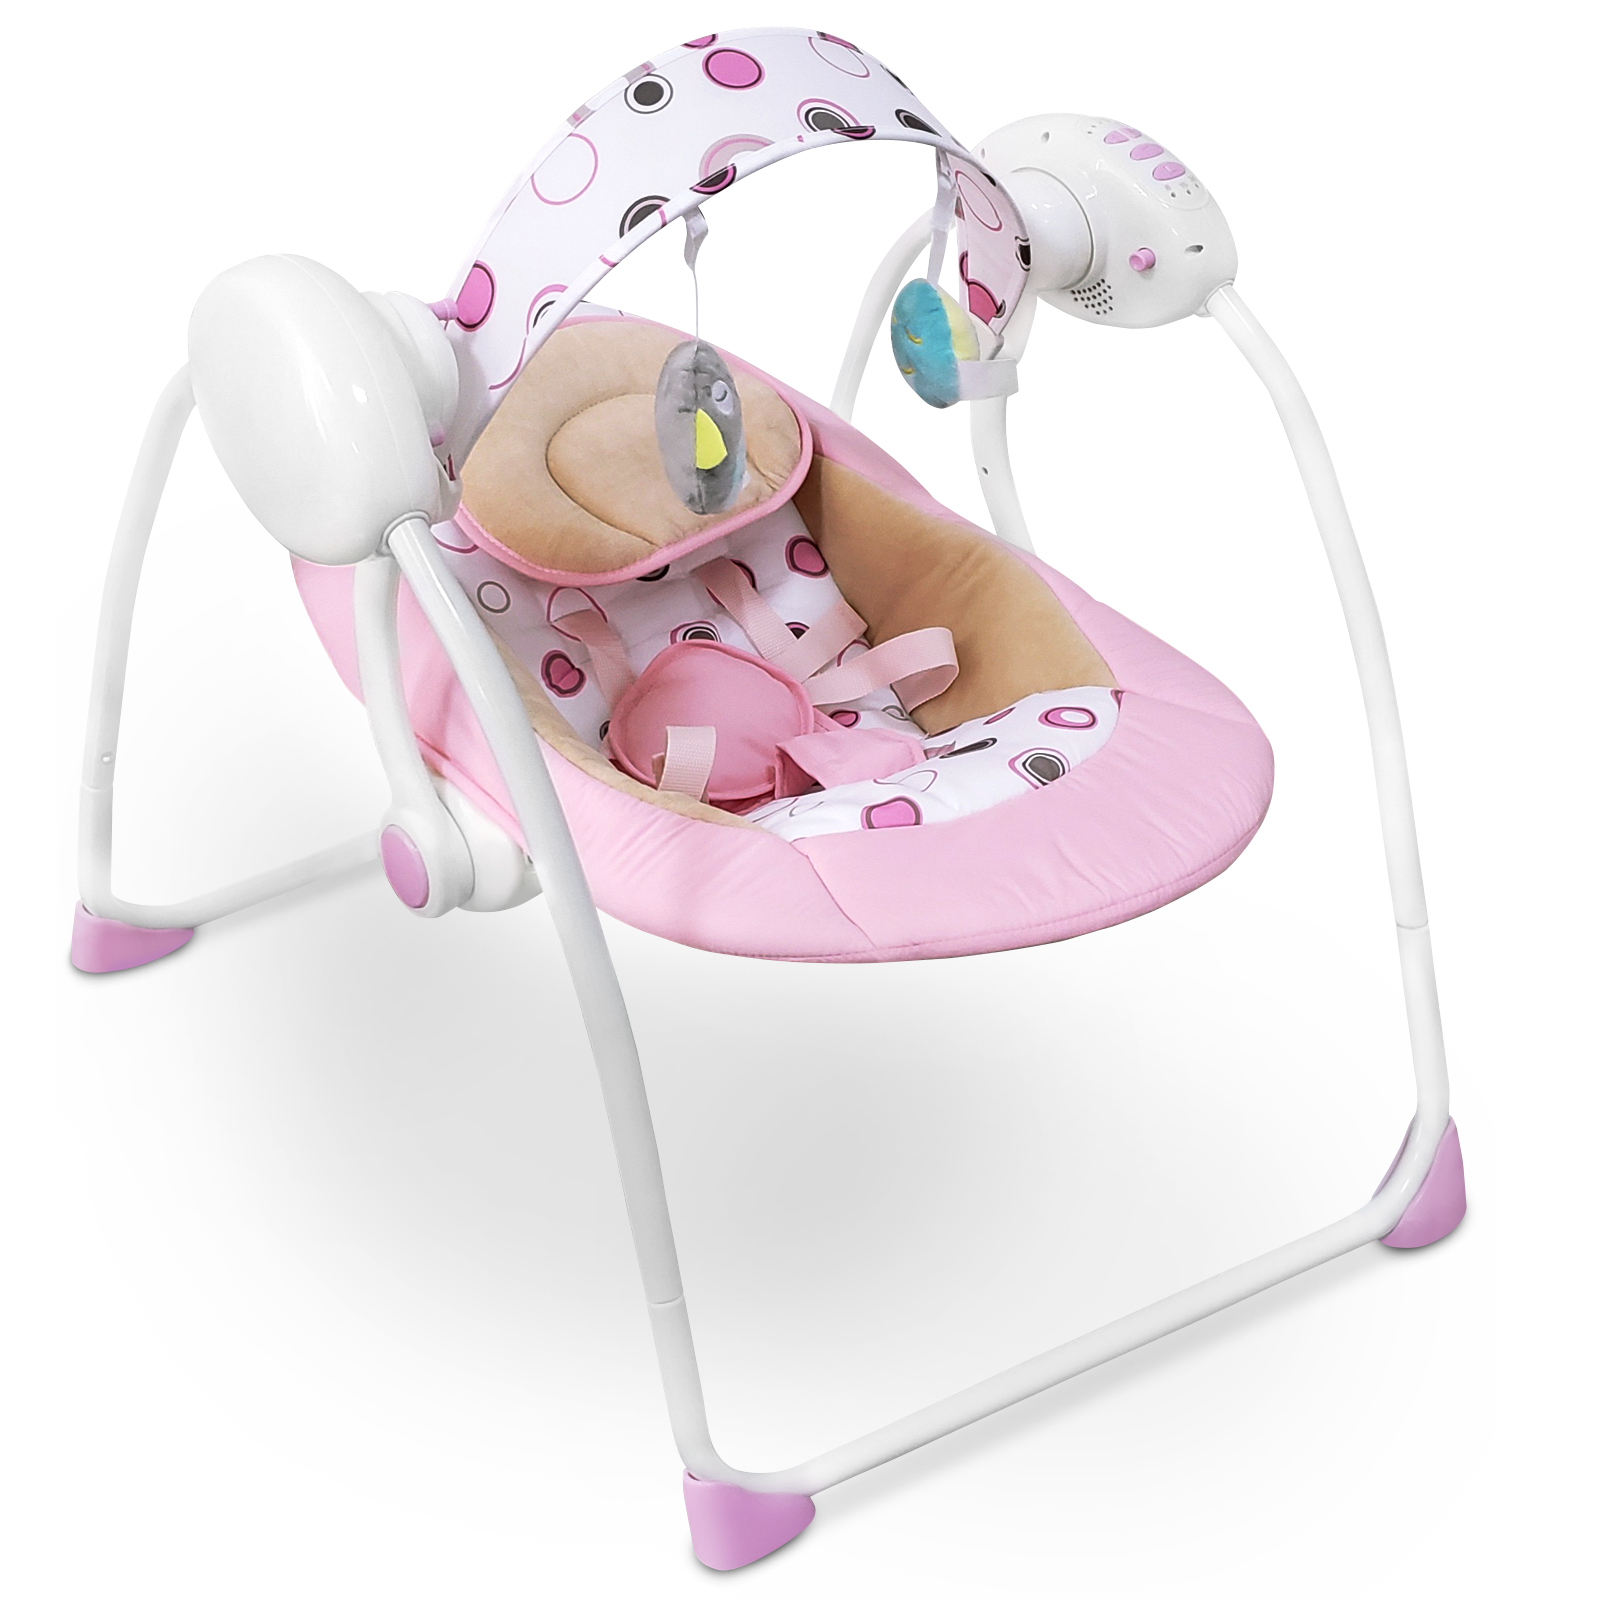 Baby-Bouncer-Music-MP3-Swing-Rocking-Chair-Infant-Entertainment-Toys-U12-Months thumbnail 18